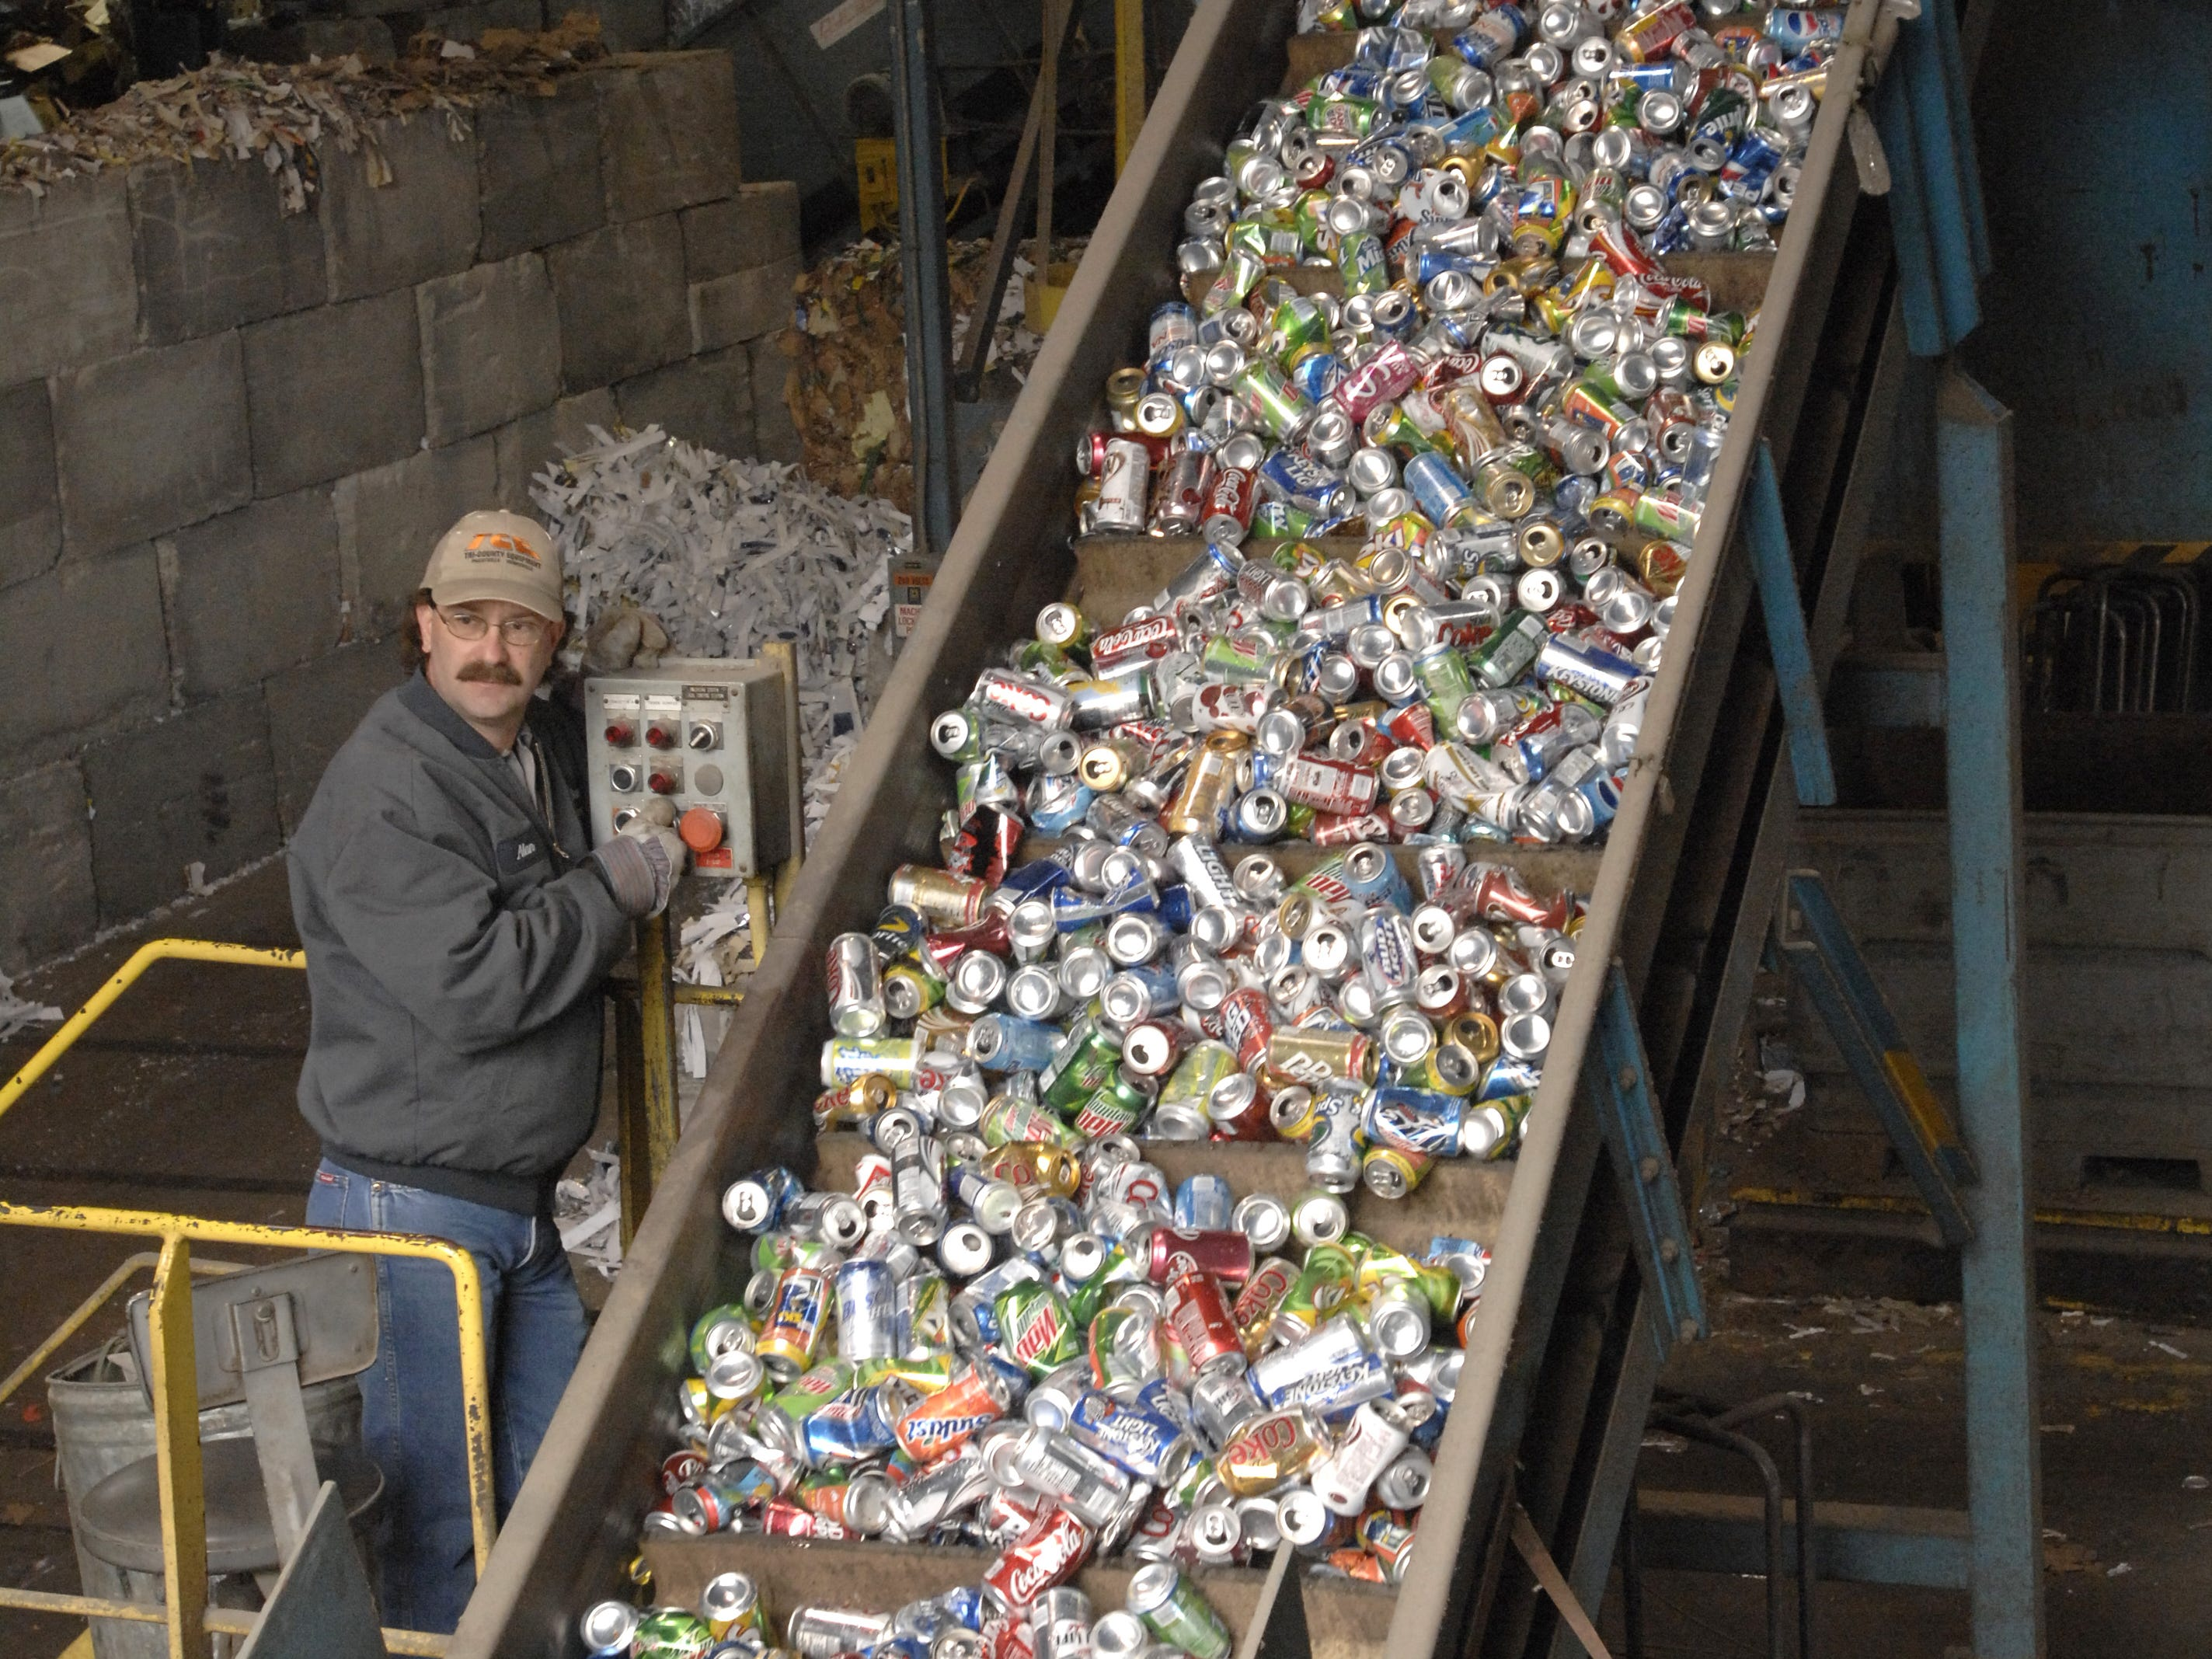 Alan Wayman operates a conveyor as aluminum cans are delivered for recycling Wednesday at Tri-State Resource and Recovery April 18, 2007. All of the curb side recycling ends up at the huge warehouse where it is baled and shipped to other recyclers. The facility handles aluminum, glass, plastic bottles 1 and 2, newspaper, mixed paper, cardboard, books, and steel cans.